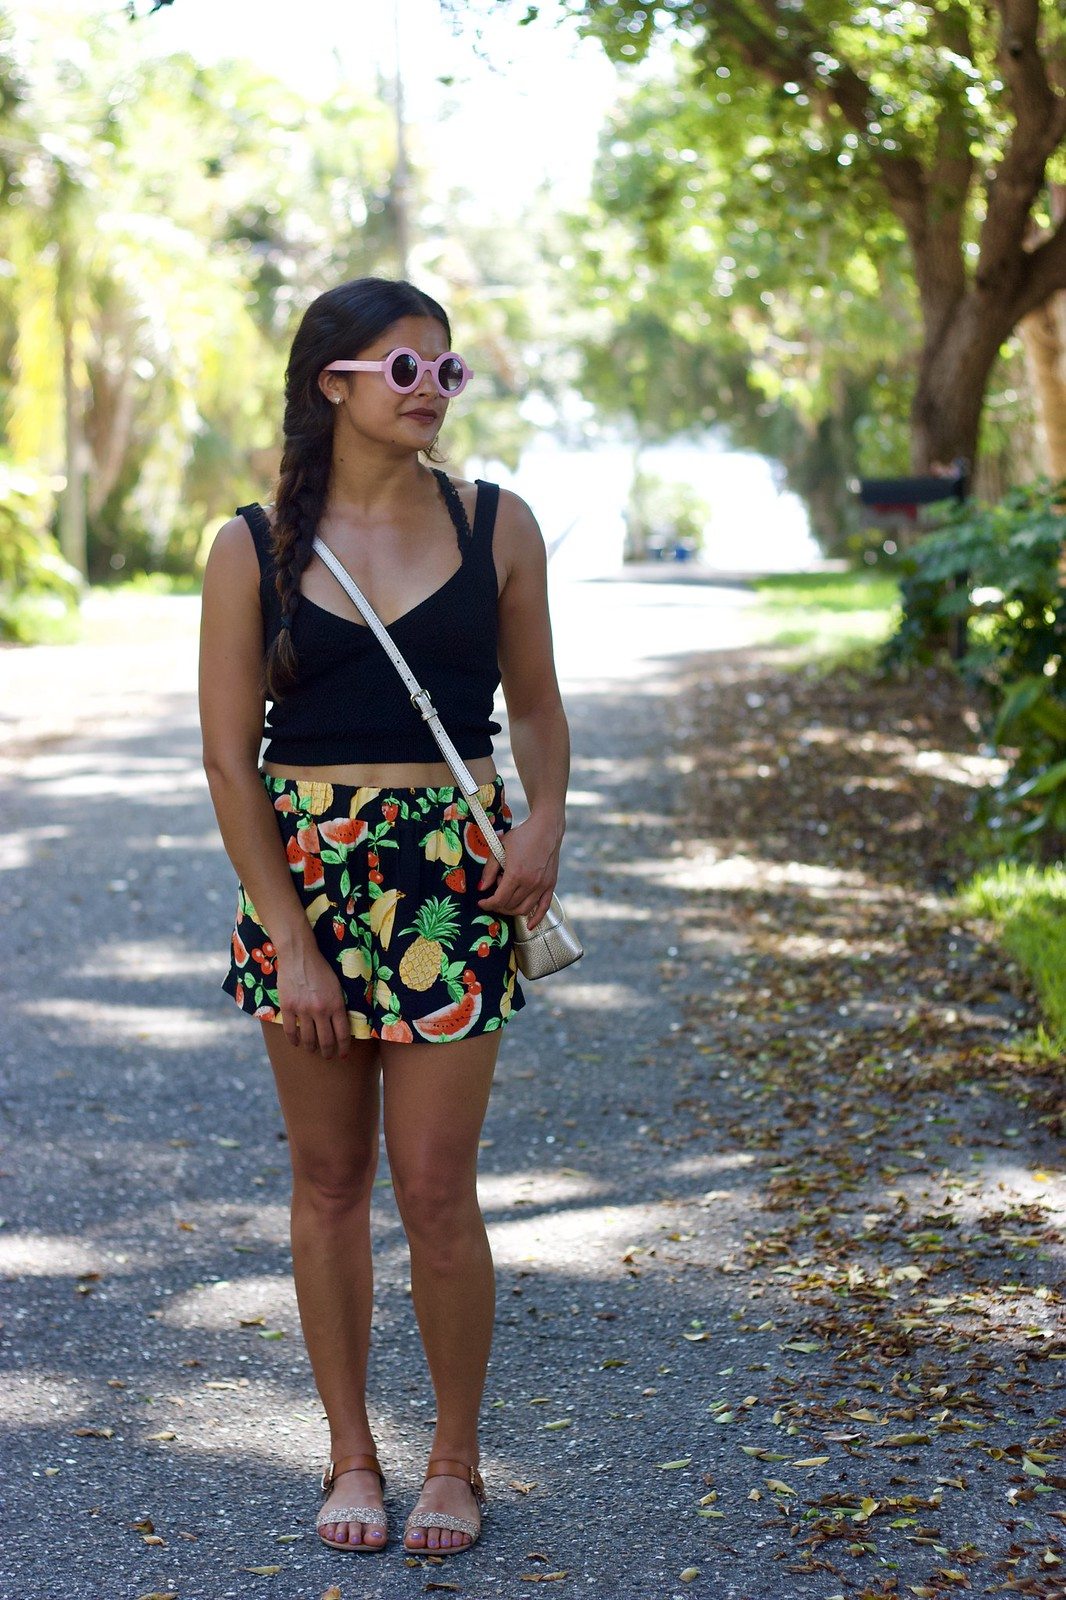 Priya the Blog, Nashville fashion blog, Nashville fashion blogger, Nashville style blog, Nashville style blogger, Summer outfit, fruit print shorts, Zara knit crop top,